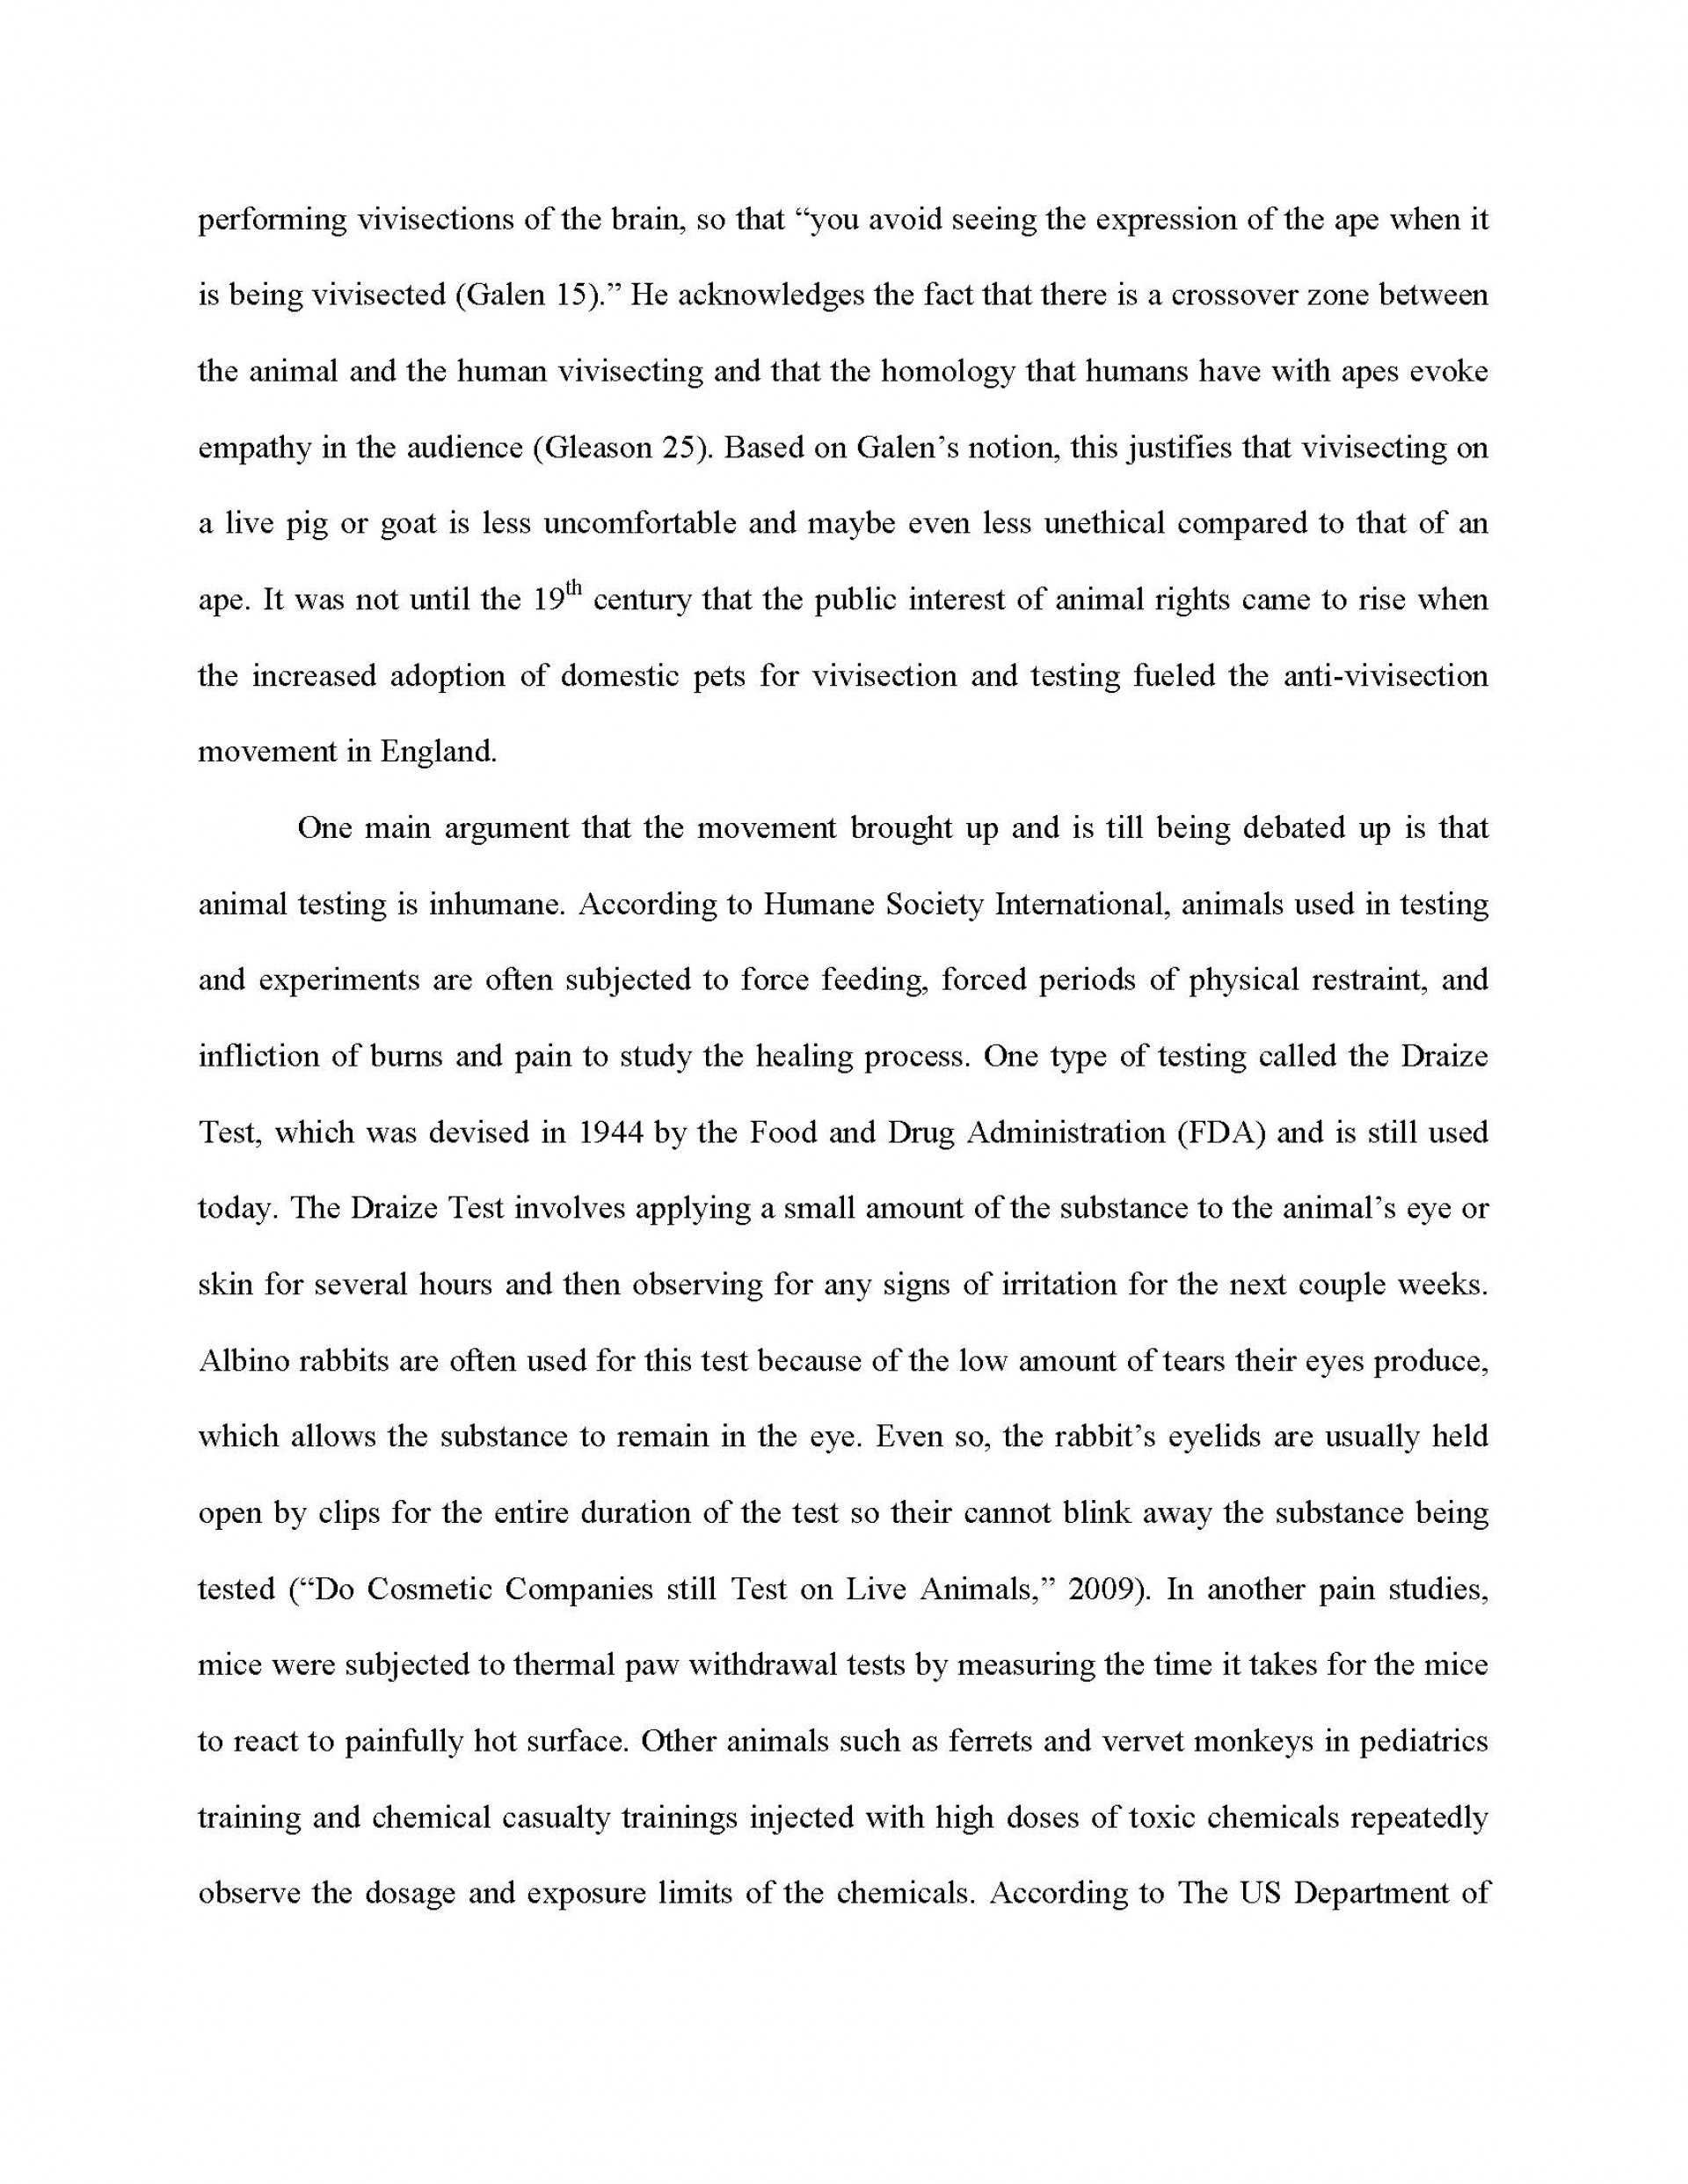 008 Animal Cruelty Essay Example Testing Final Page 2 Stunning Hook Persuasive Topics Titles 1920